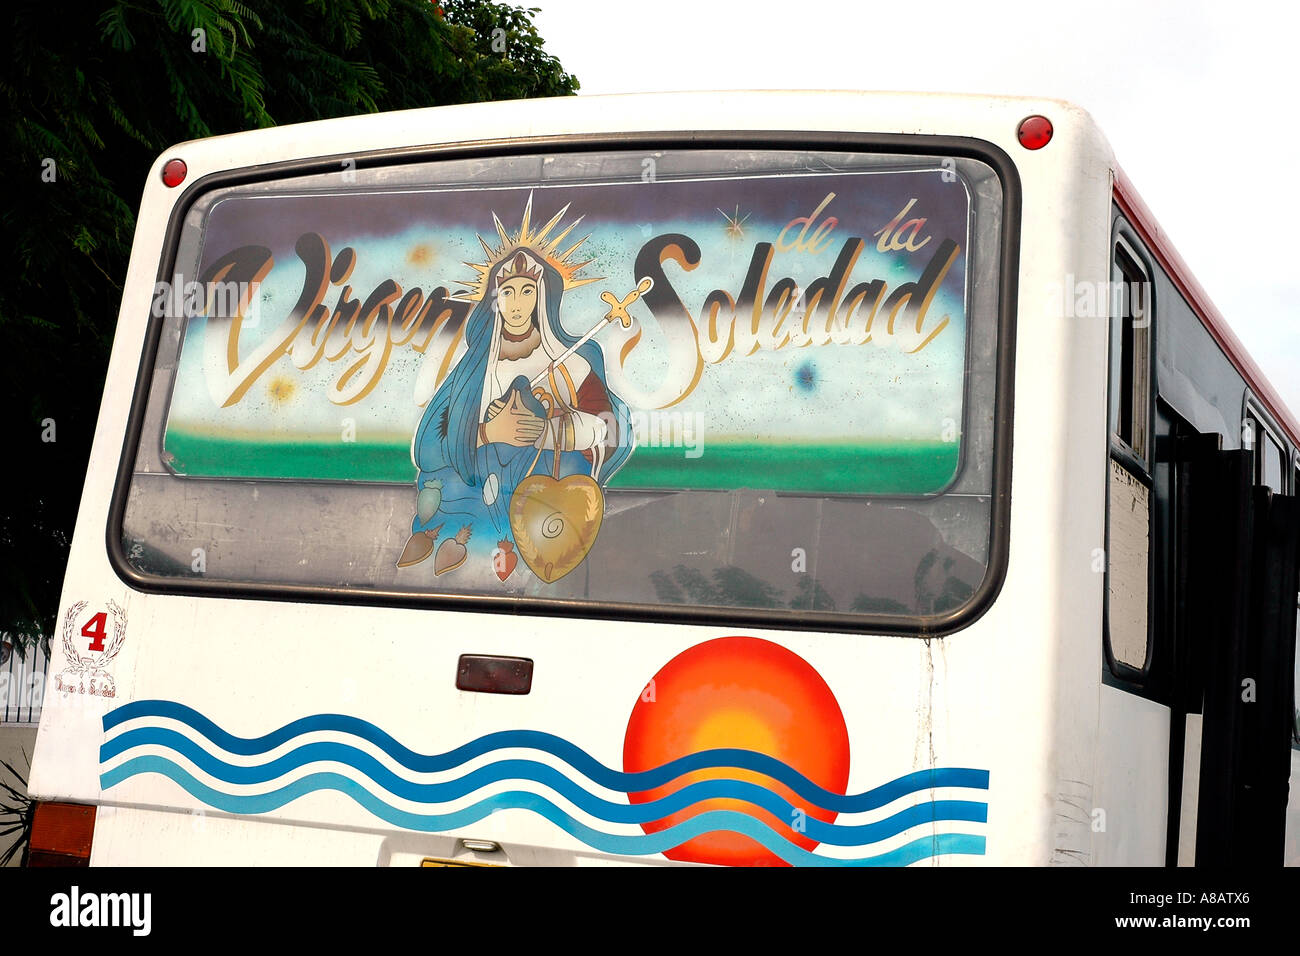 On the rear window of a bus in Ciudad Bolivar, Venezuela, an expression of faith - Stock Image